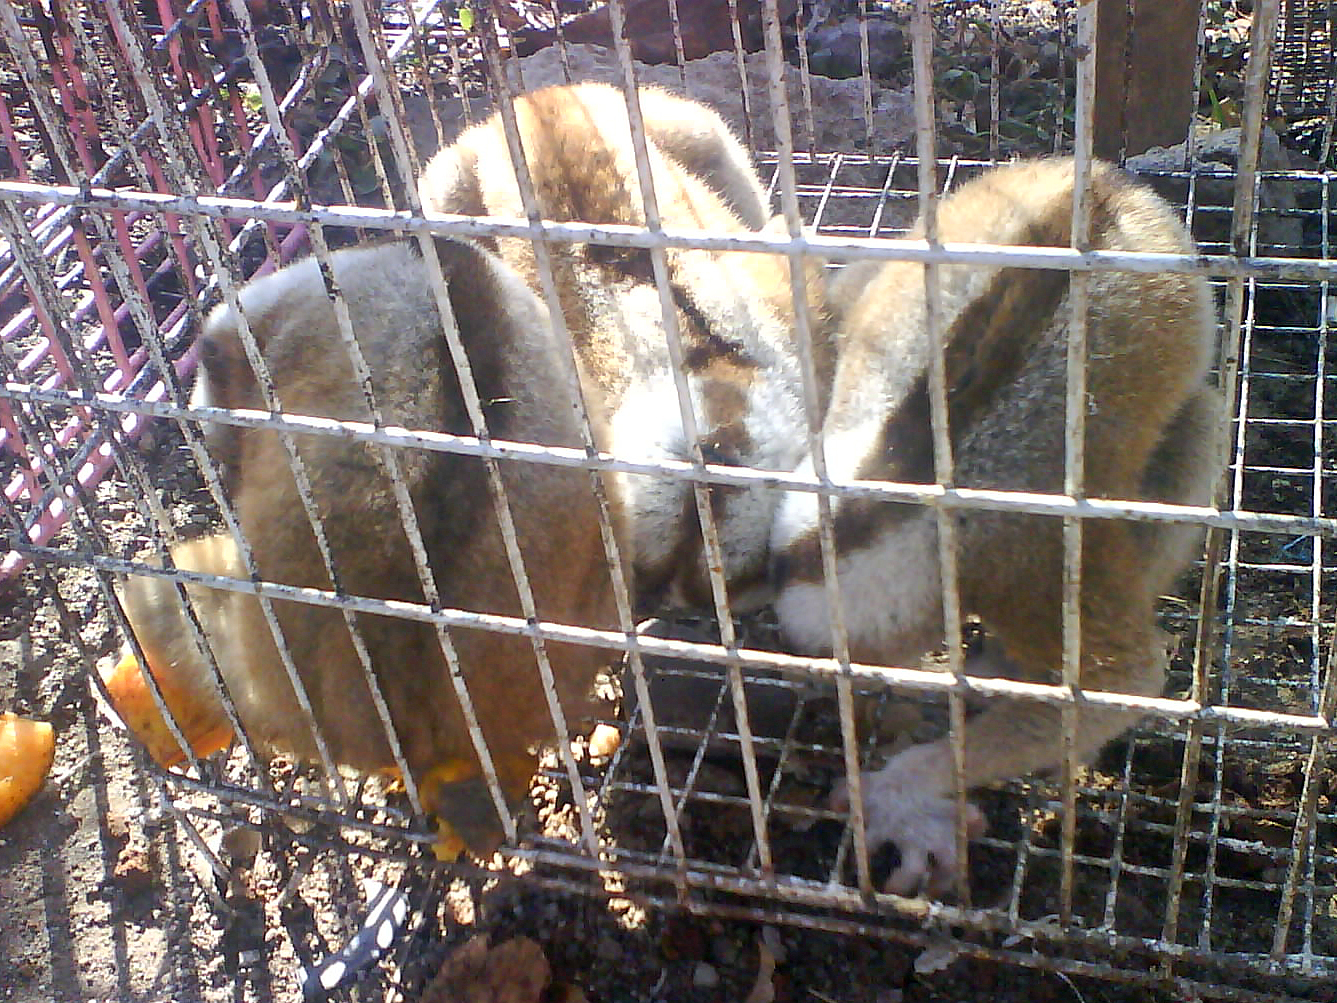 Witching Ohio Exotic Pets Kansas Market Caged Nycticebus Market Caged Nycticebus Wikimedia Commons Exotic Pets Sale Sale bark post Exotic Pets For Sale